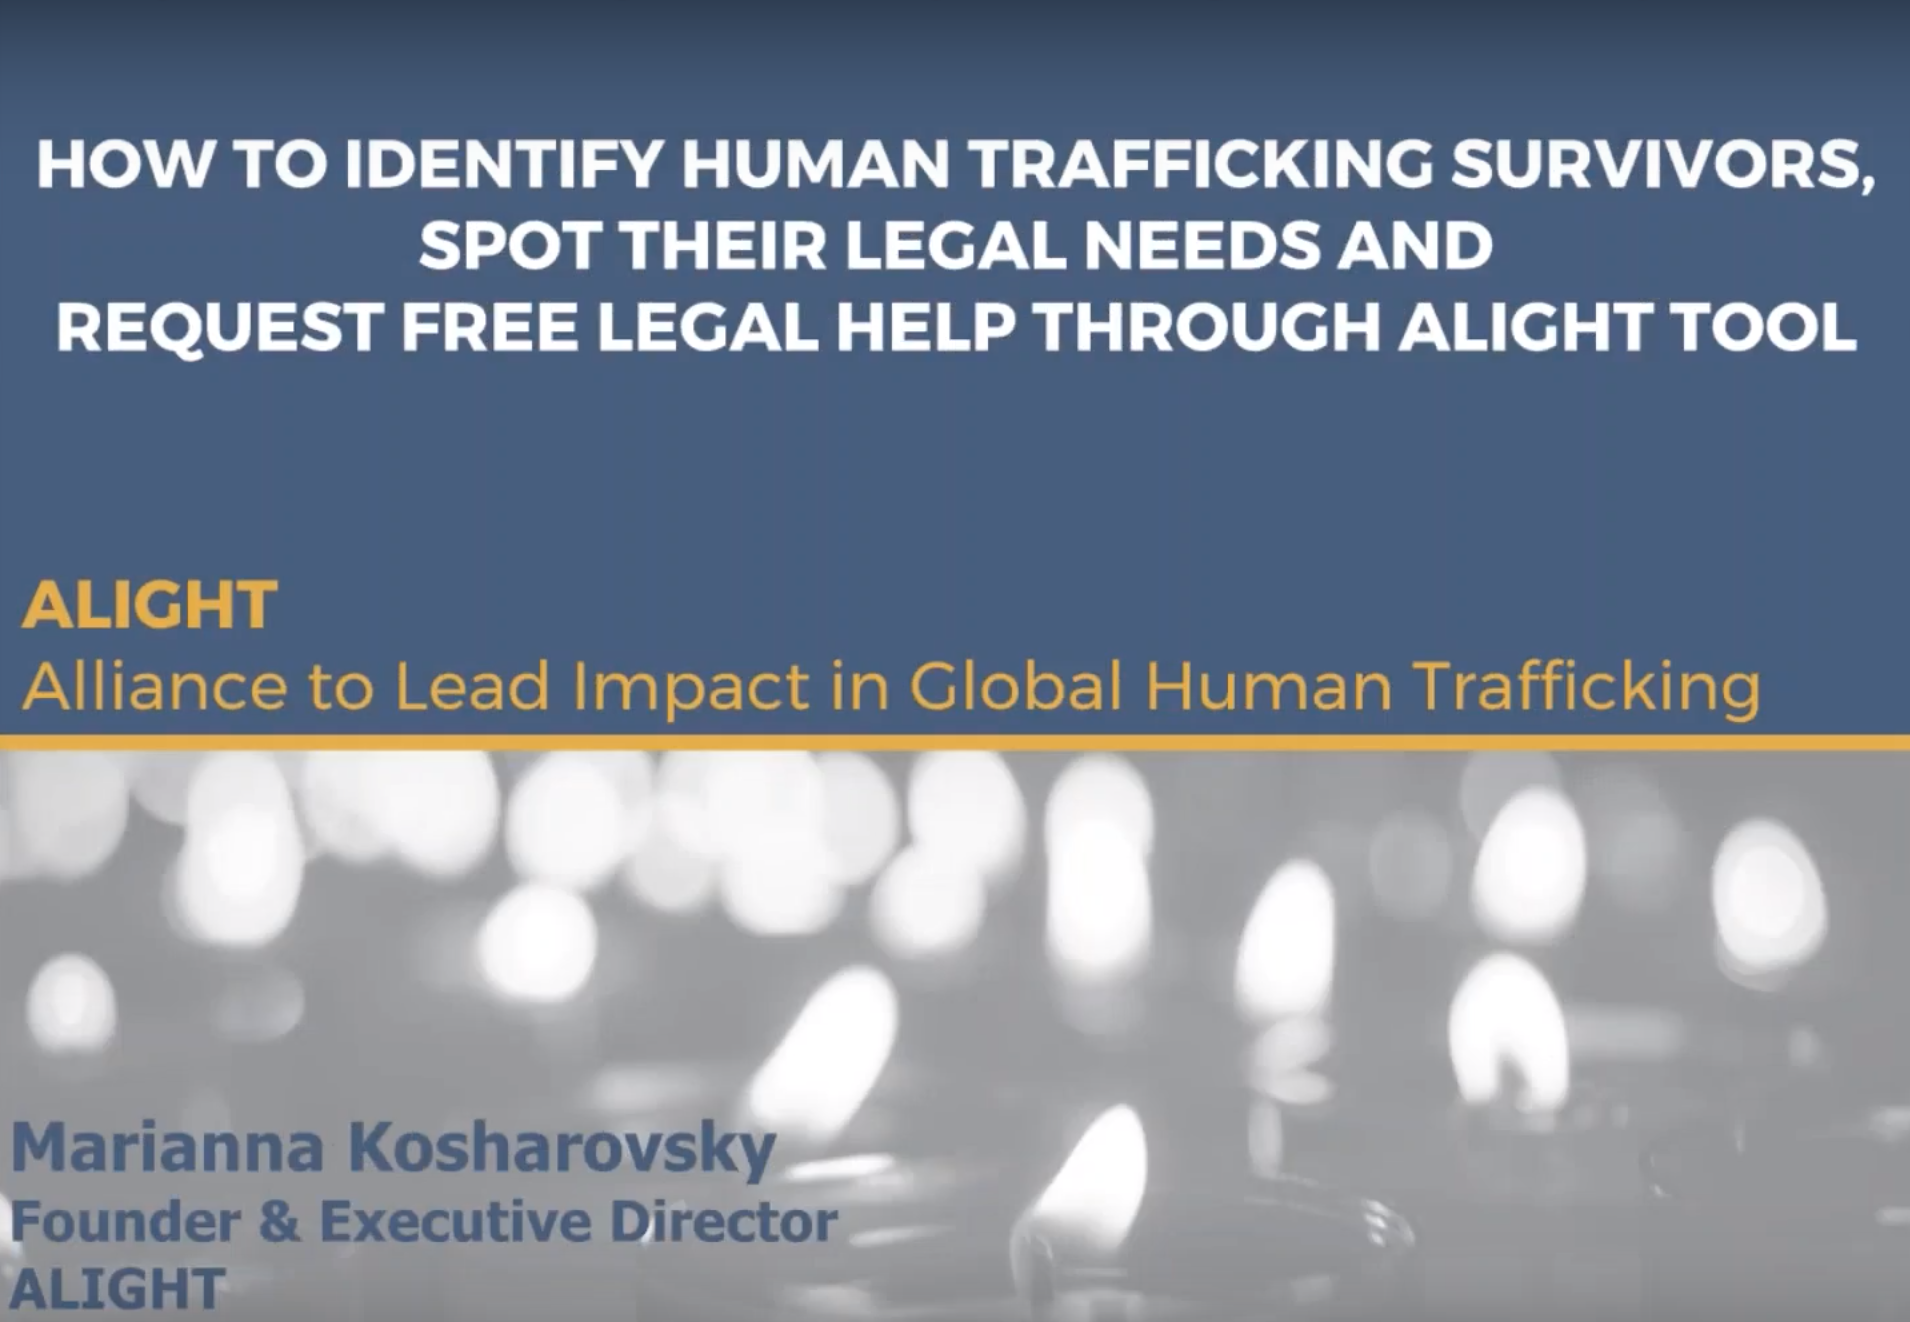 How to Identify Human Trafficking Survivors, Spit their Legal Needs and Request Free Legal Help Through ALIGHT